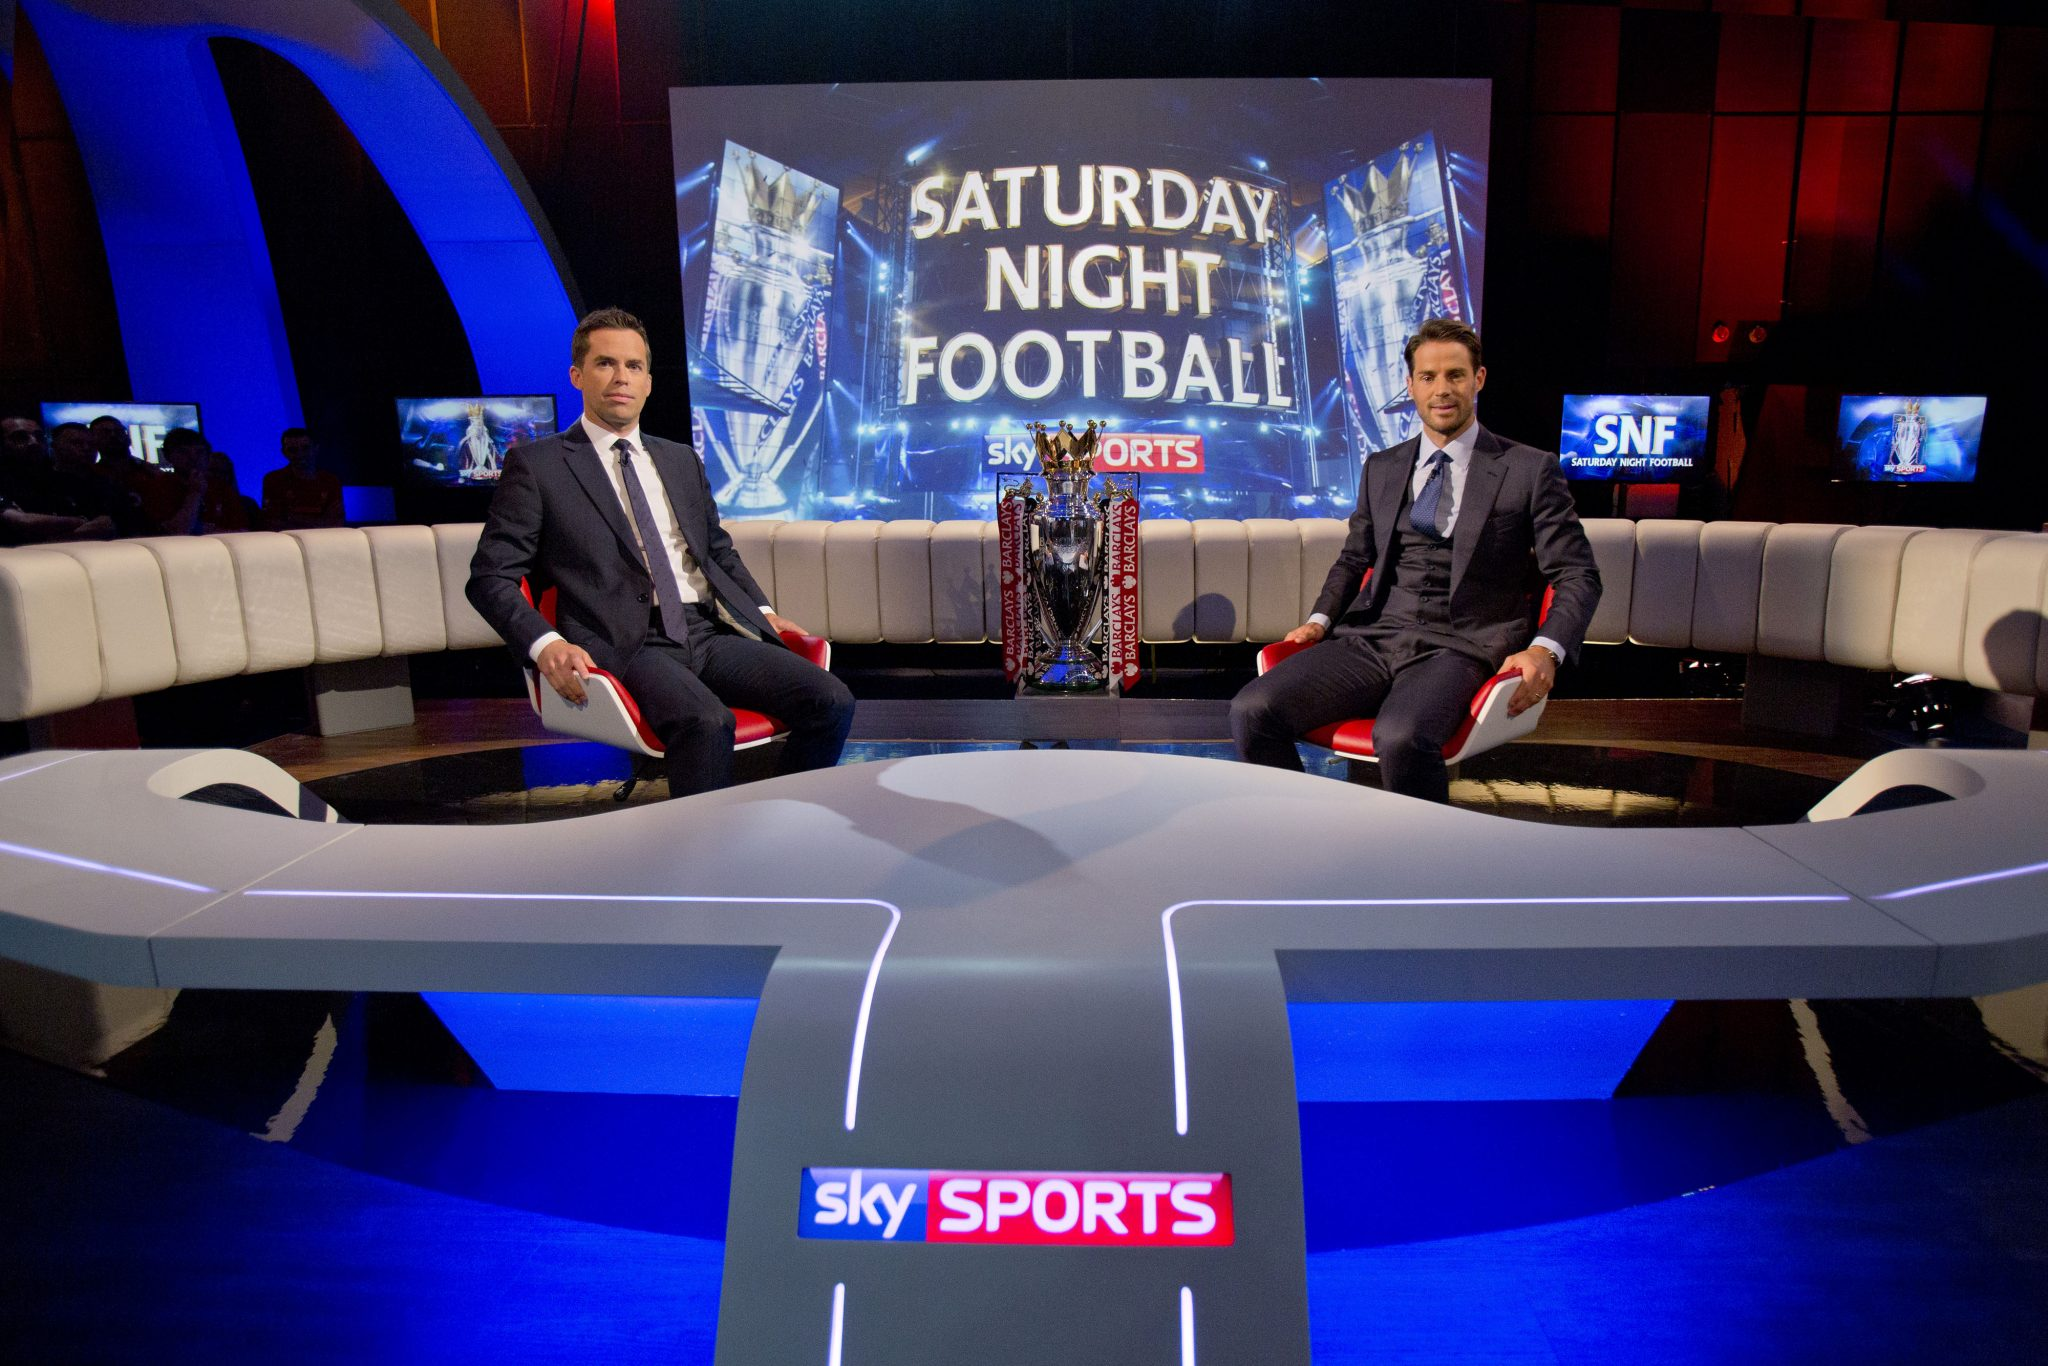 Sky Sports show Ford Saturday Night Football